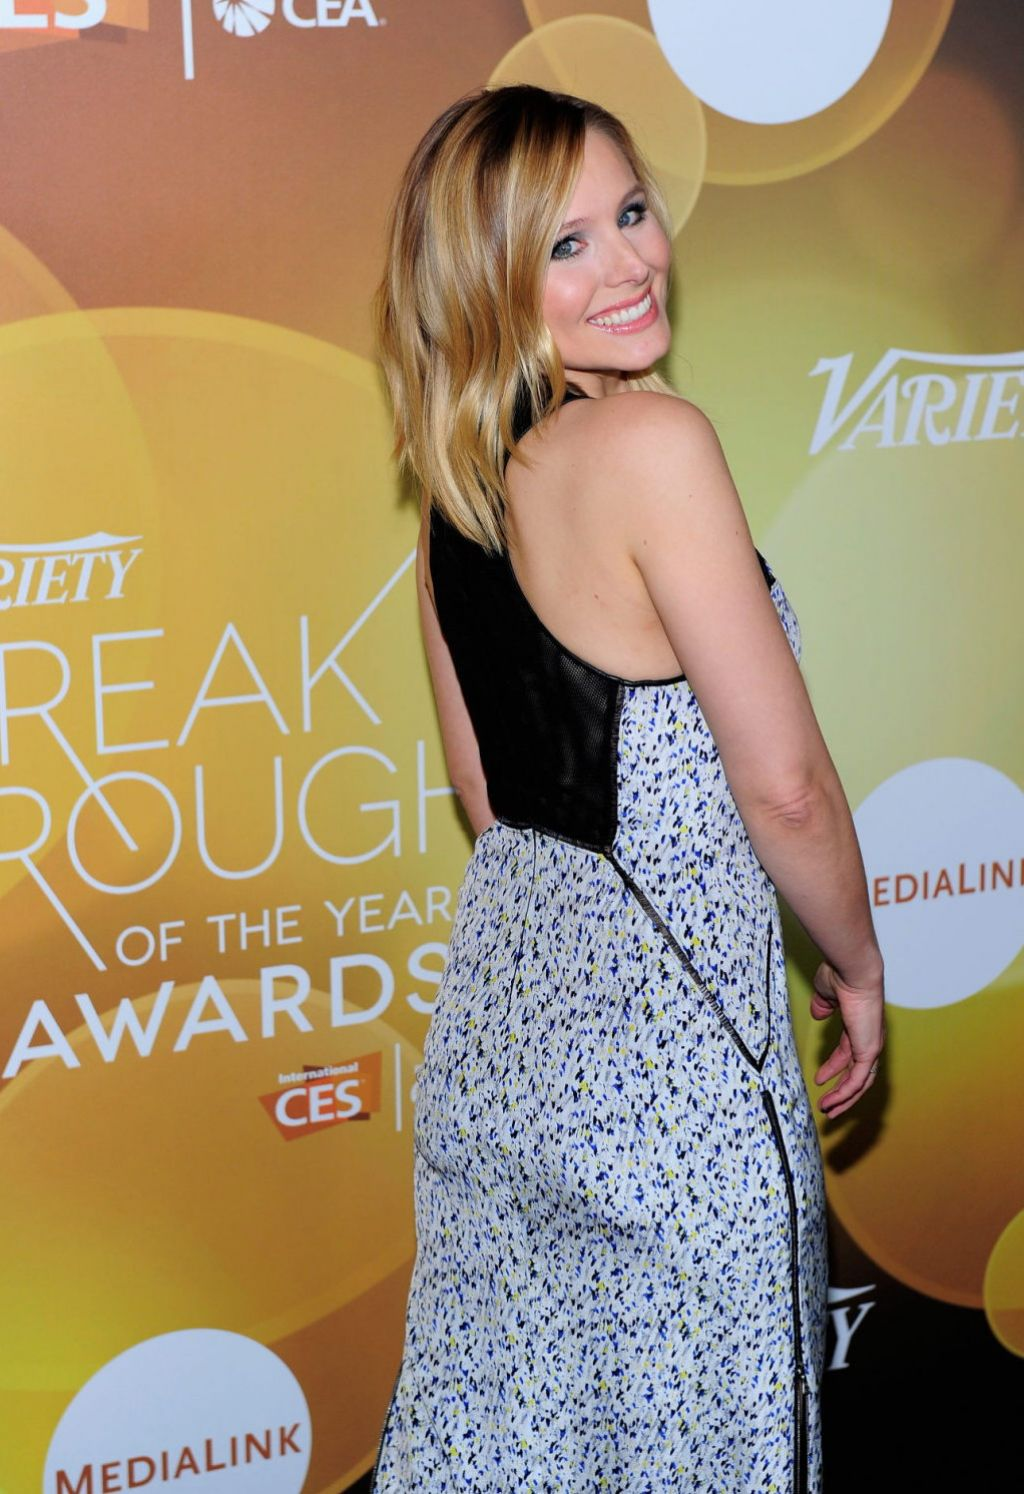 Kristen Bell - 2014 Variety Breakthrough Of The Year Awards in Vegas - Jan. 2014